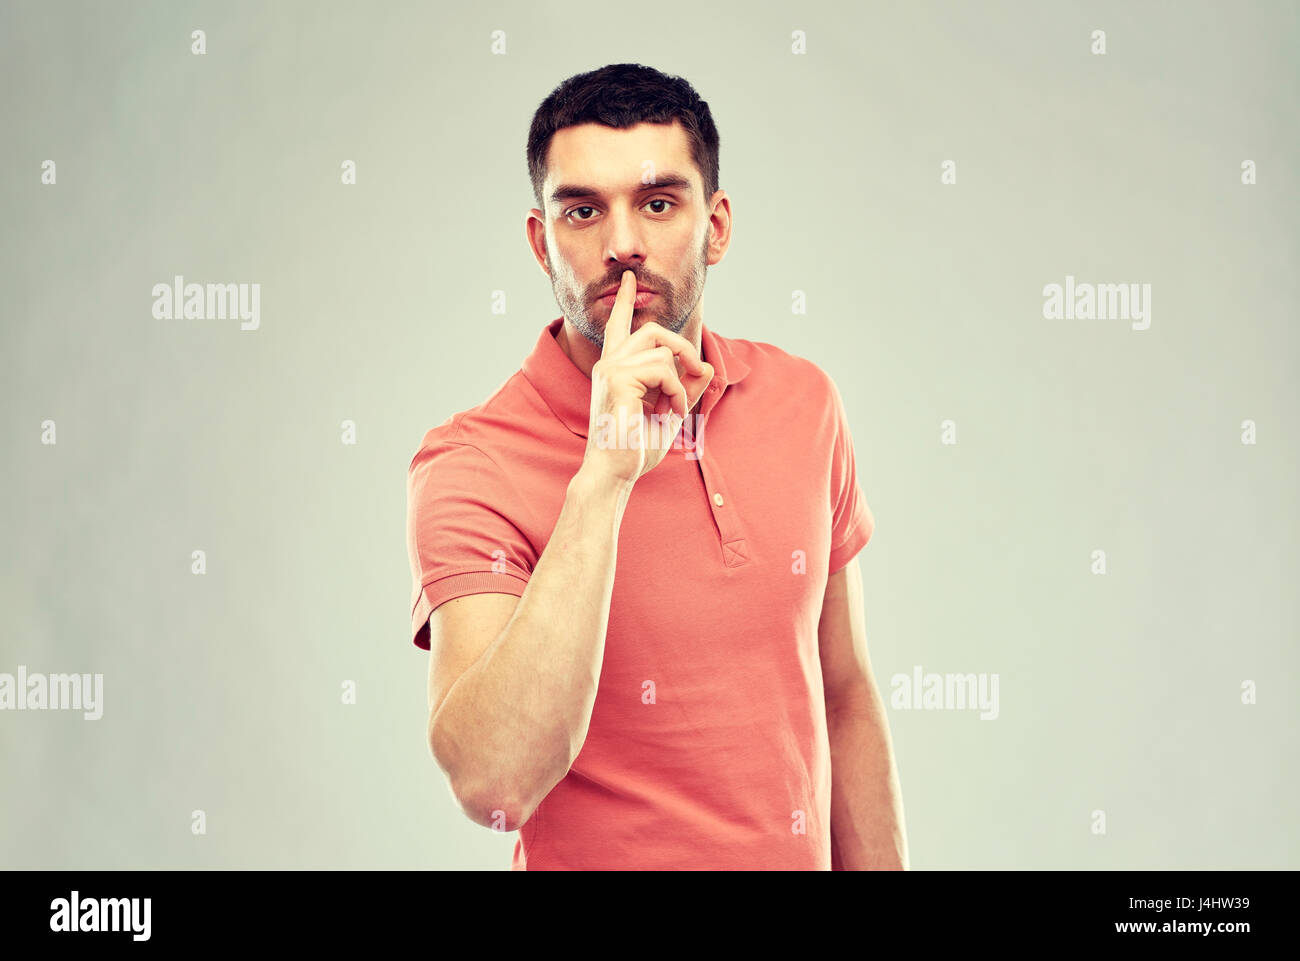 young man making hush sign over gray background - Stock Image